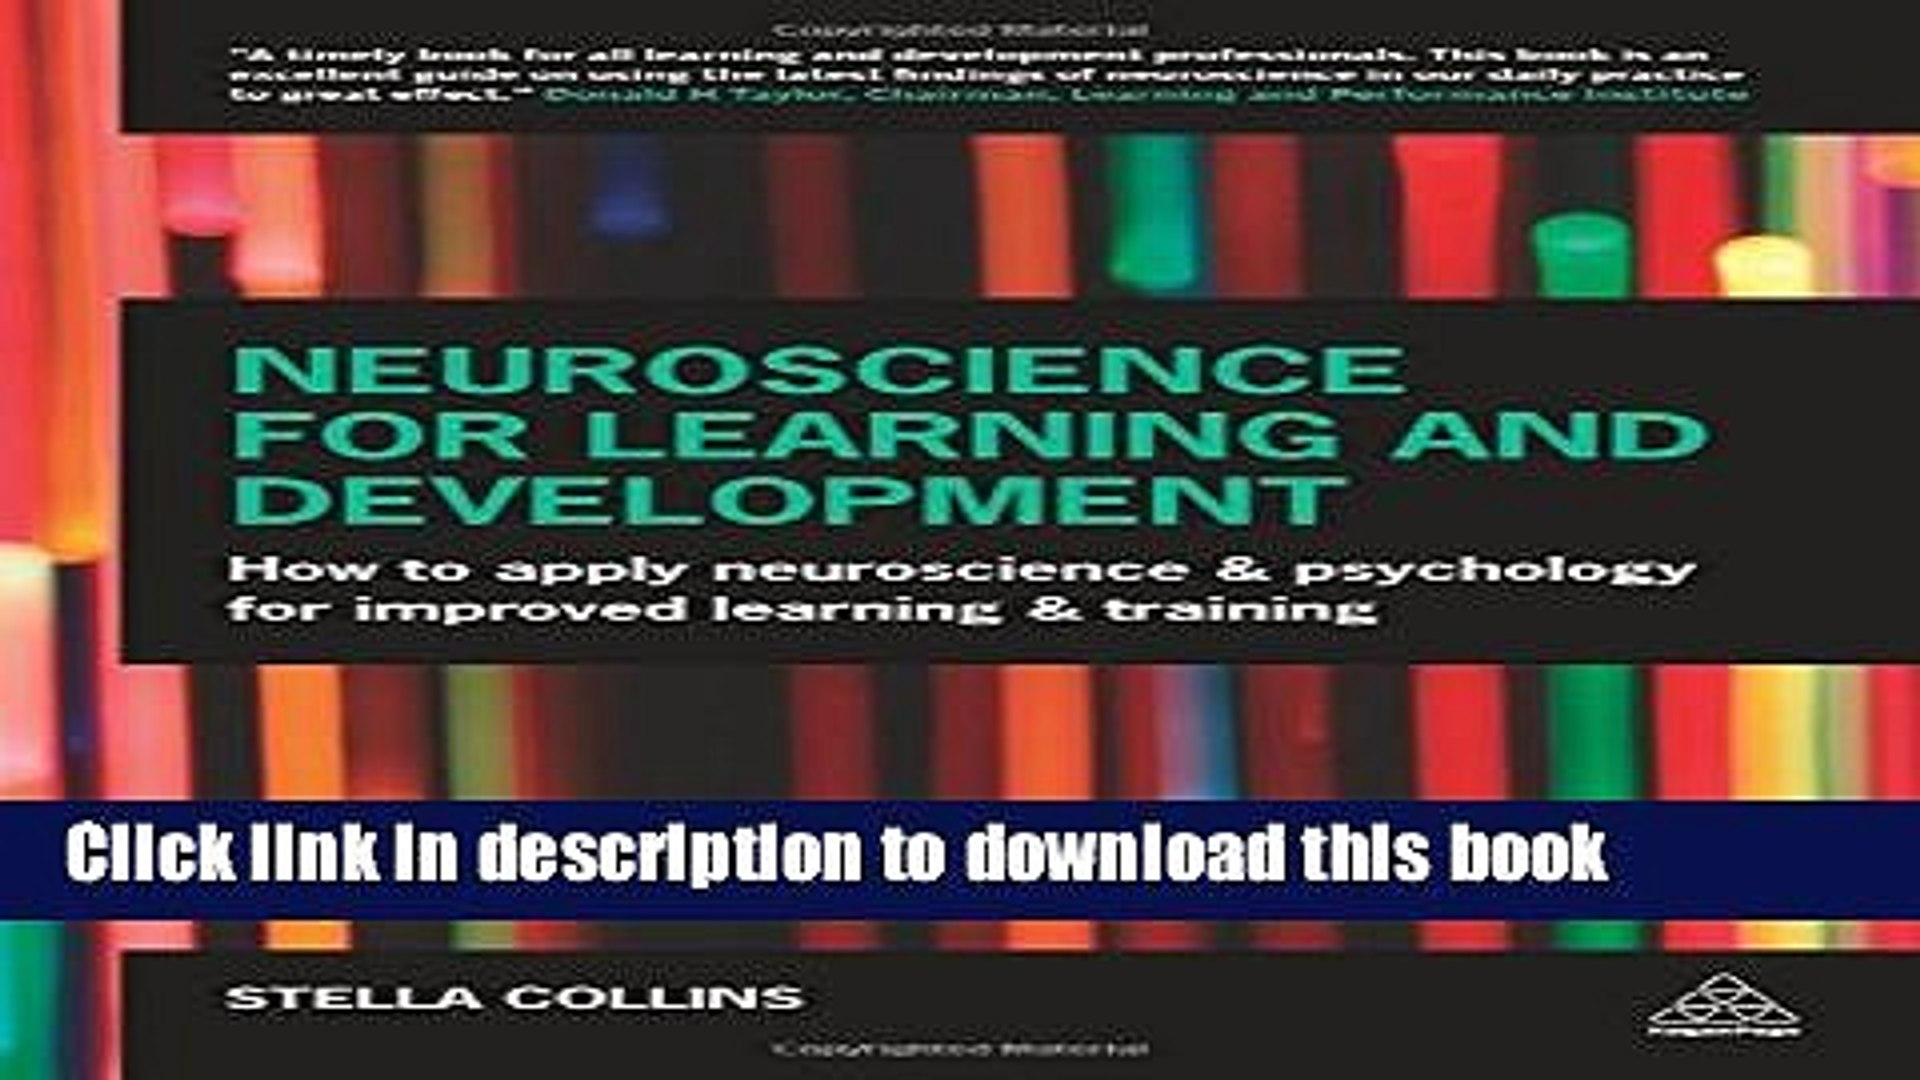 Books Neuroscience for Learning and Development: How to Apply Neuroscience and Psychology for